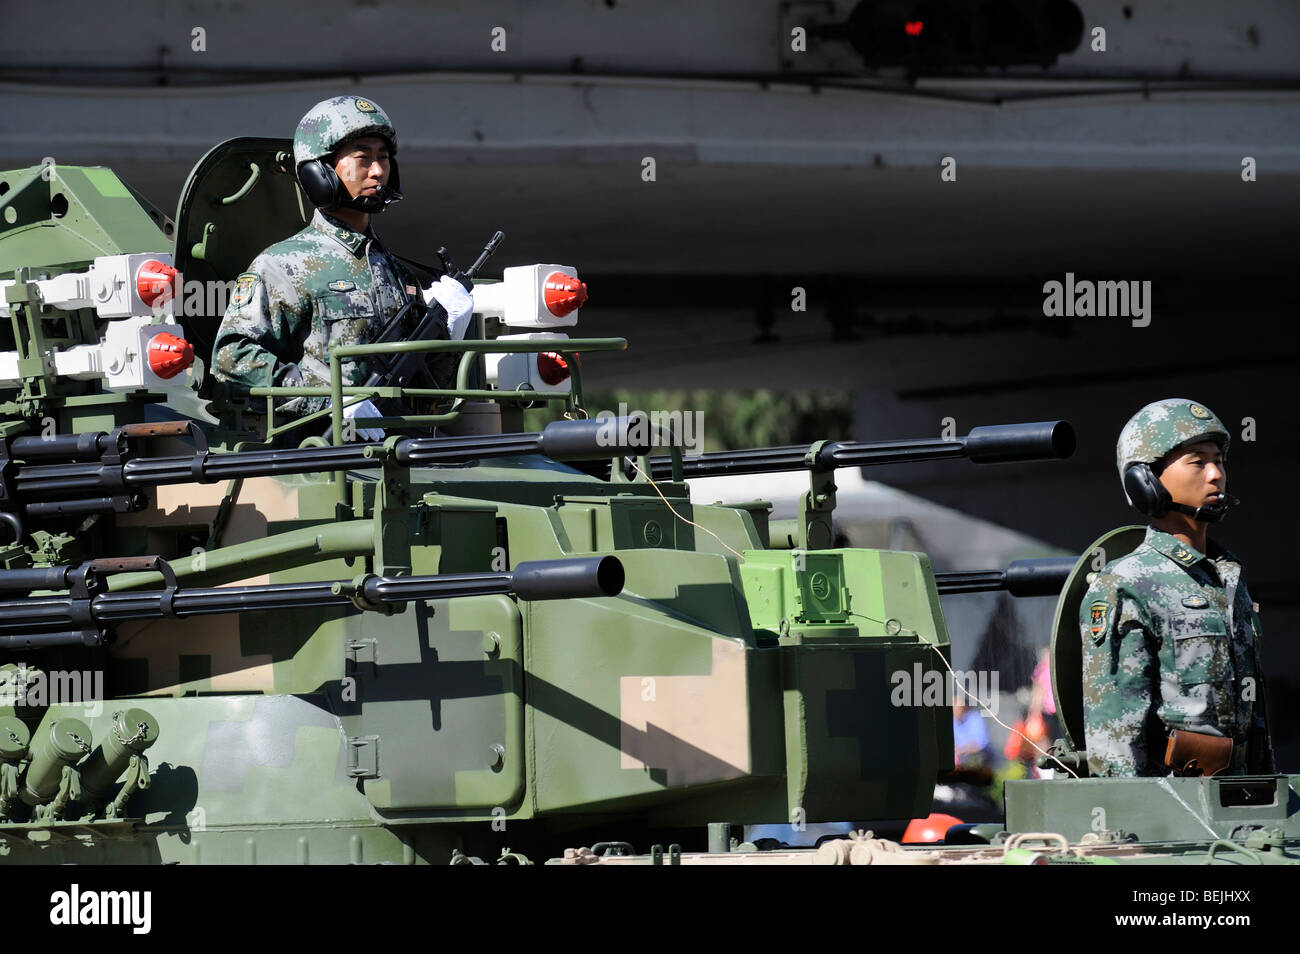 Military parade marking Chinas 60th anniversary of the Peoples Republic of China, soldiers on a tank. 01-Oct-2009 - Stock Image